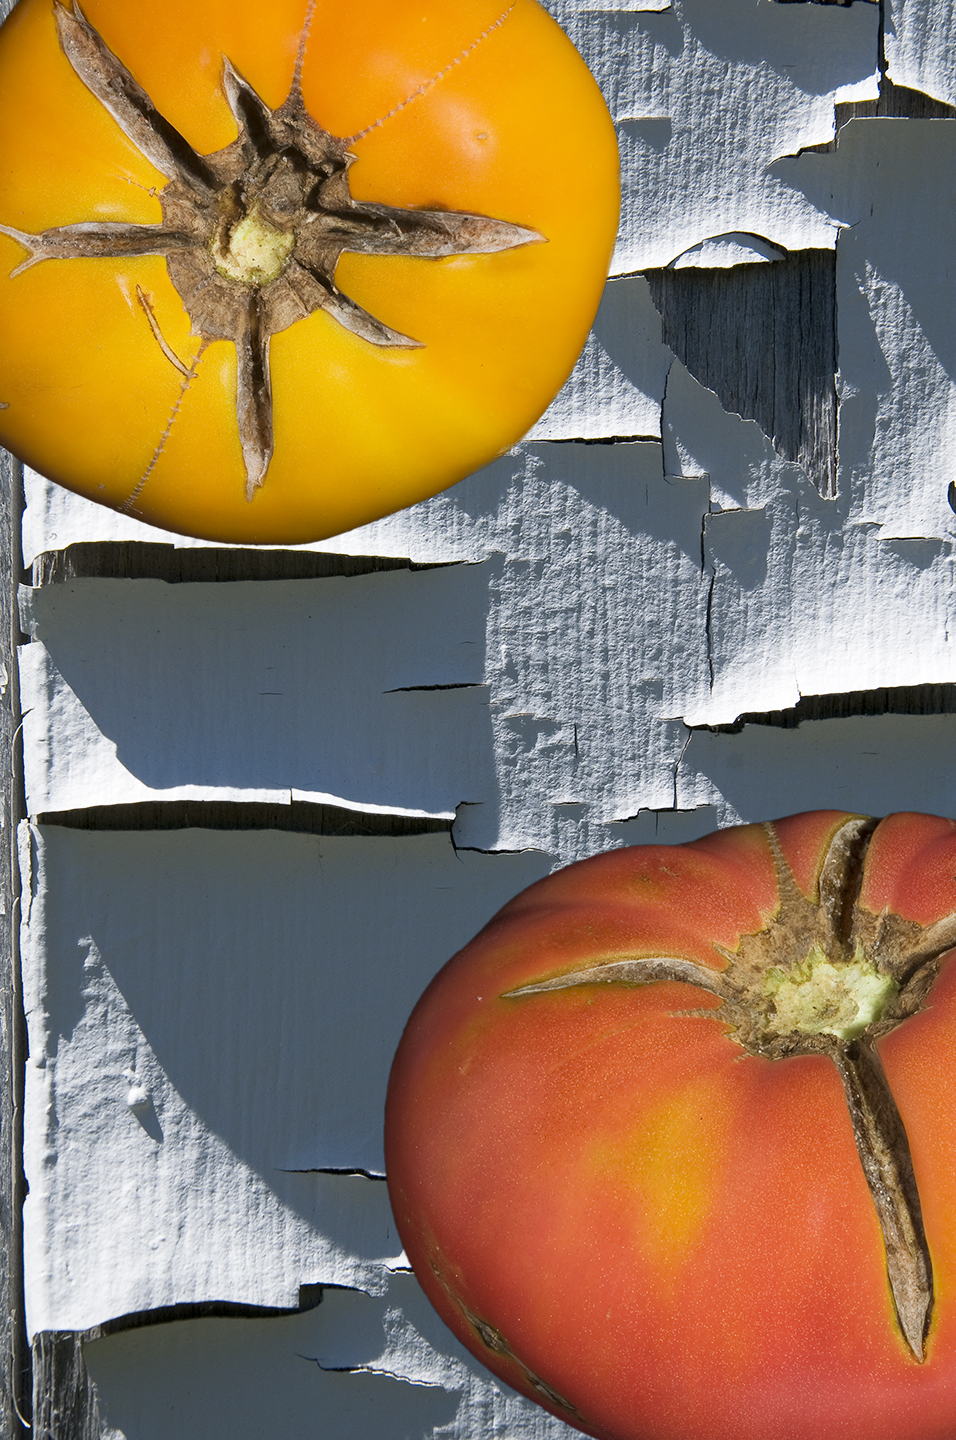 Tomatoes and Peeling Paint